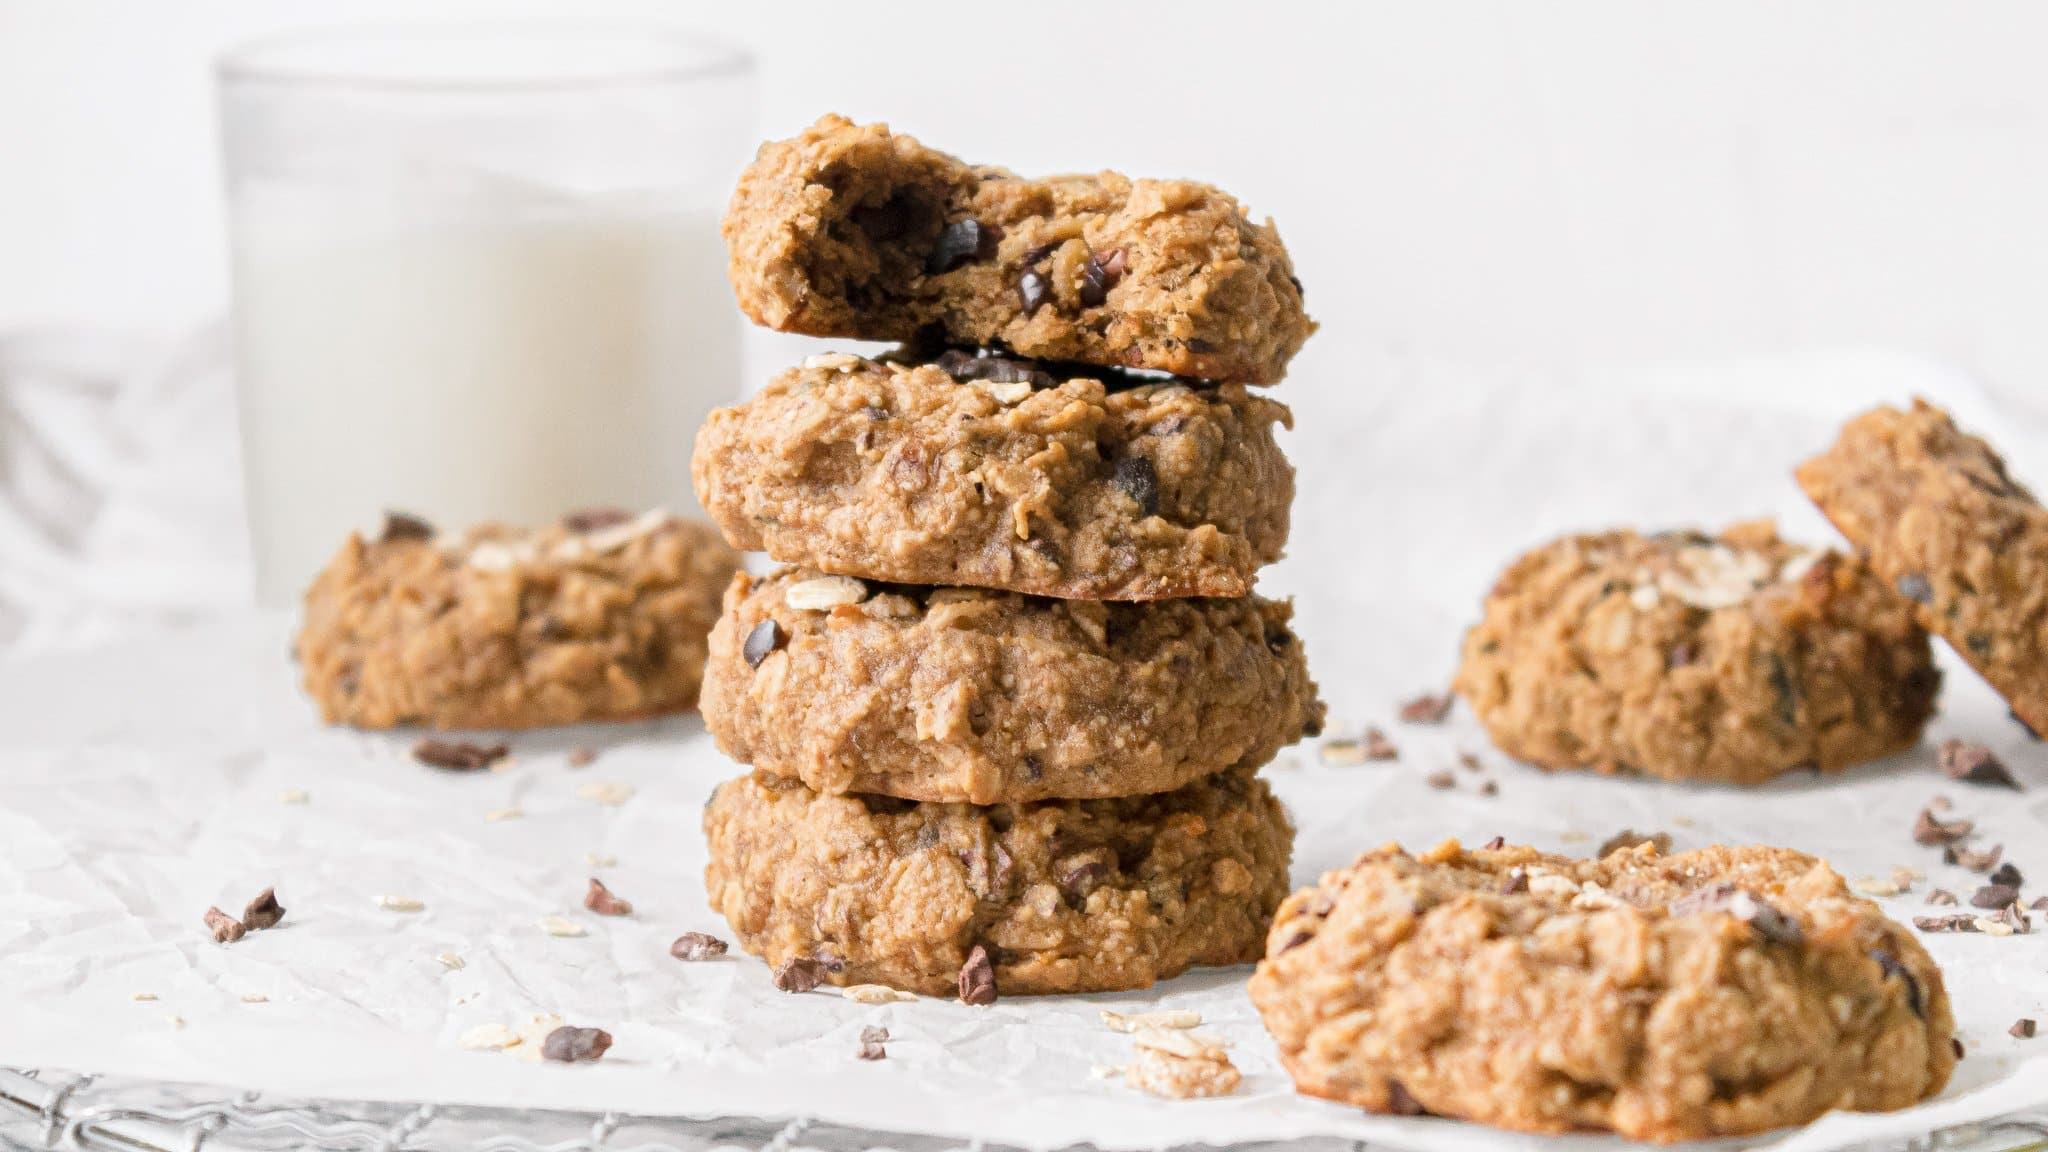 Vegan Oatmeal Cookies with Banana, Cacao, and Peanut Butter